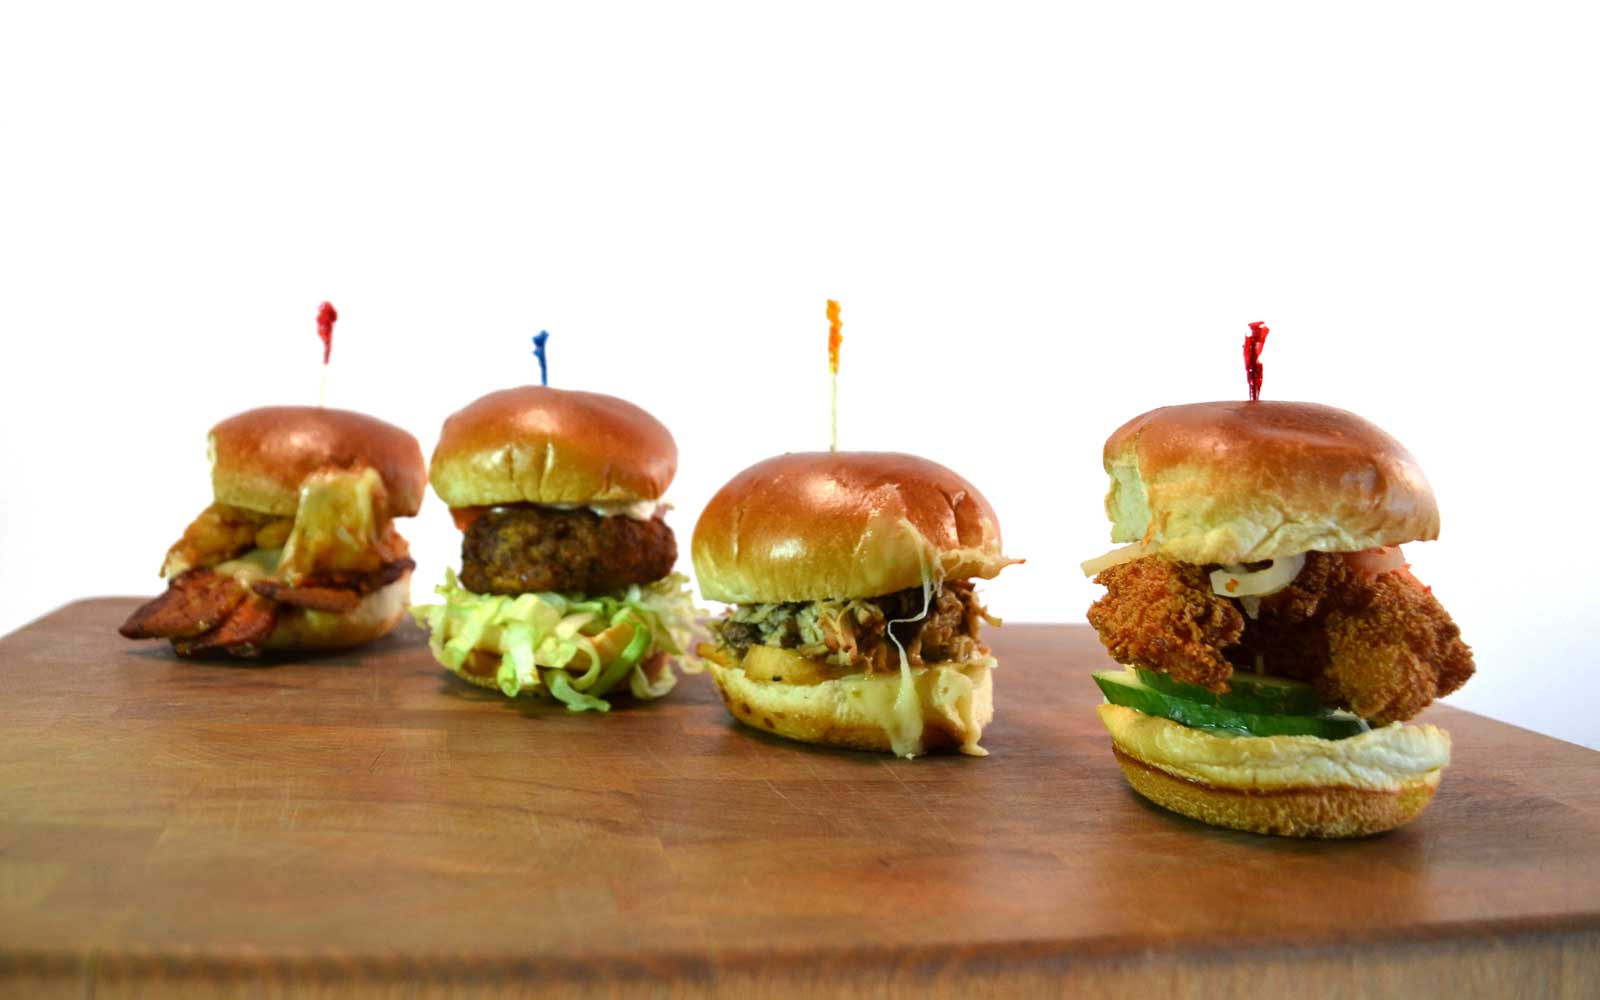 9. Sly's Sliders and Fries